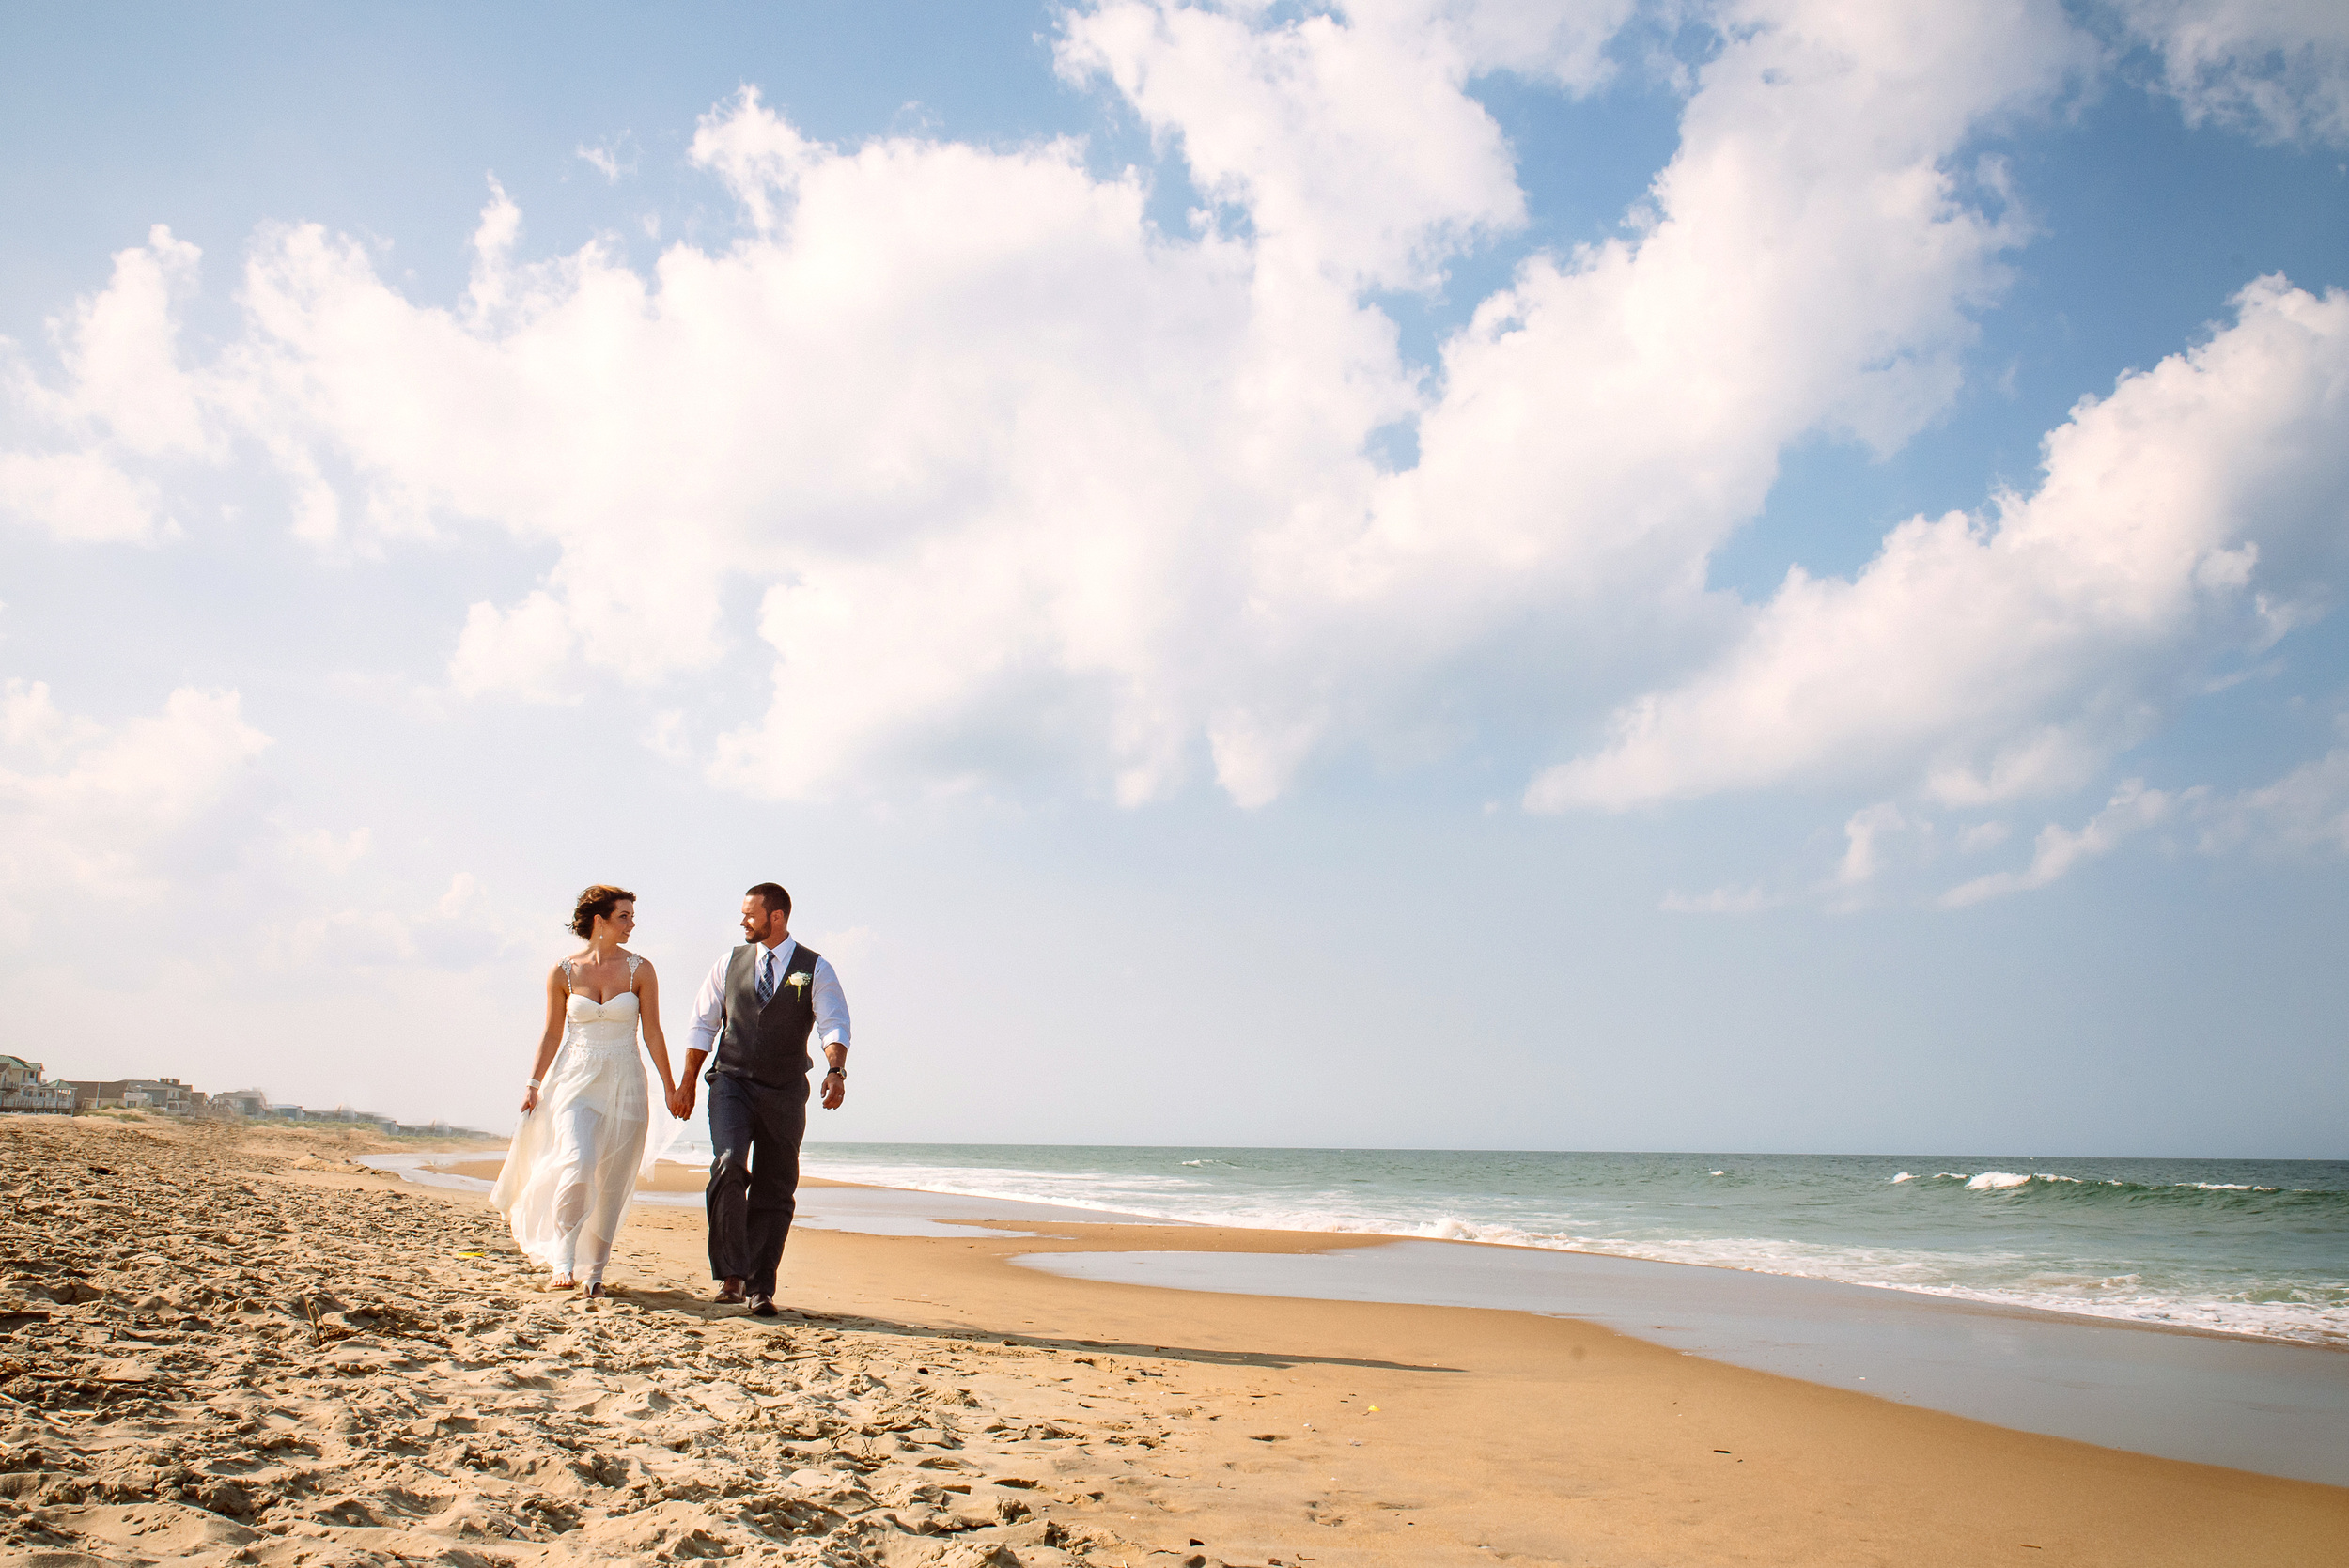 sandbridge-beach-wedding-photography-beach-wedding-gorgeous-virginia-beach-wedding-photography-melissa-bliss-photography